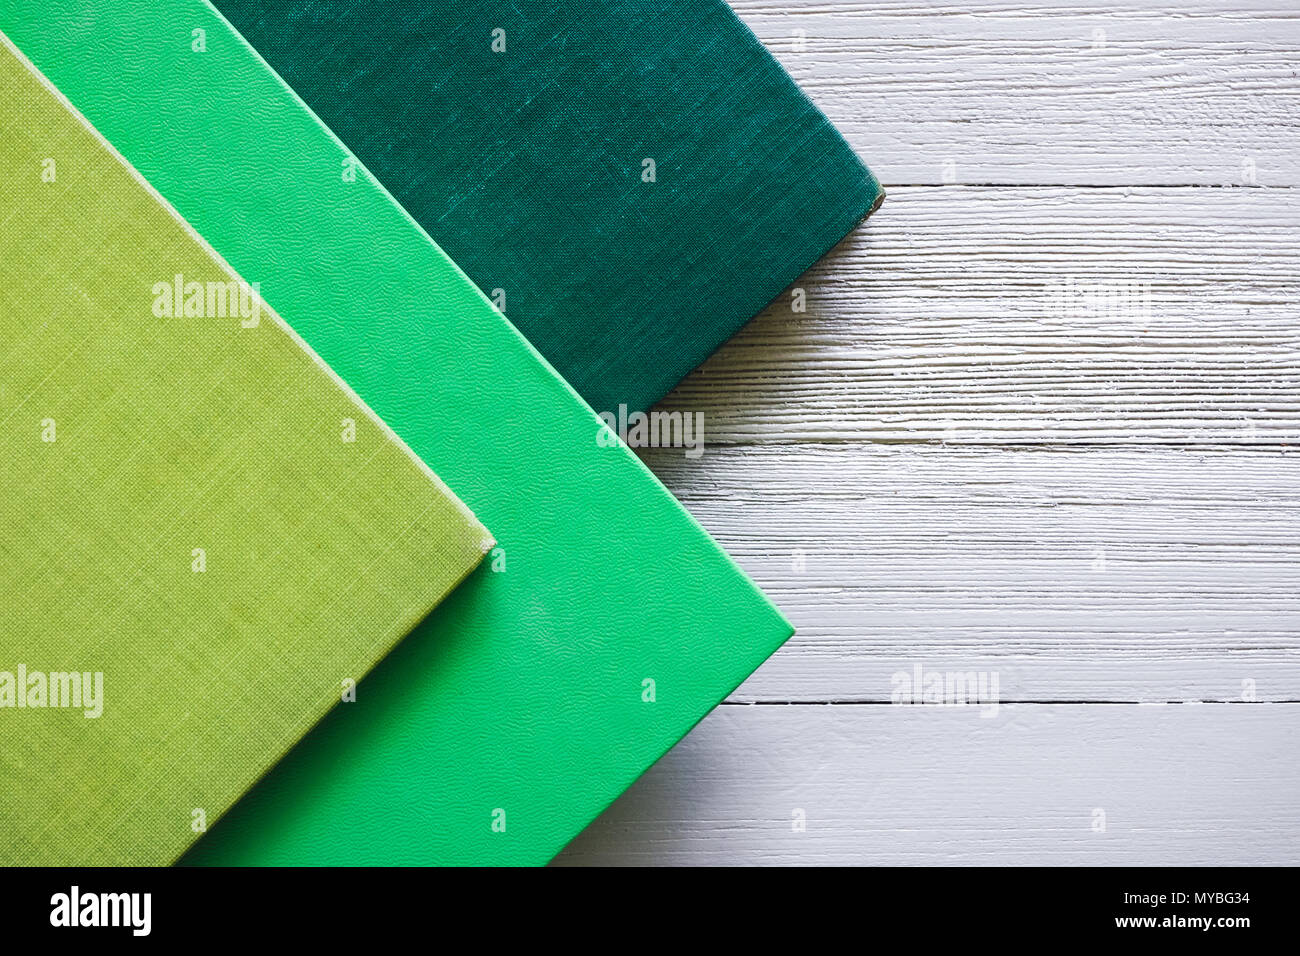 Stacked Green Covered Books on White Table with Space for Copy - Stock Image